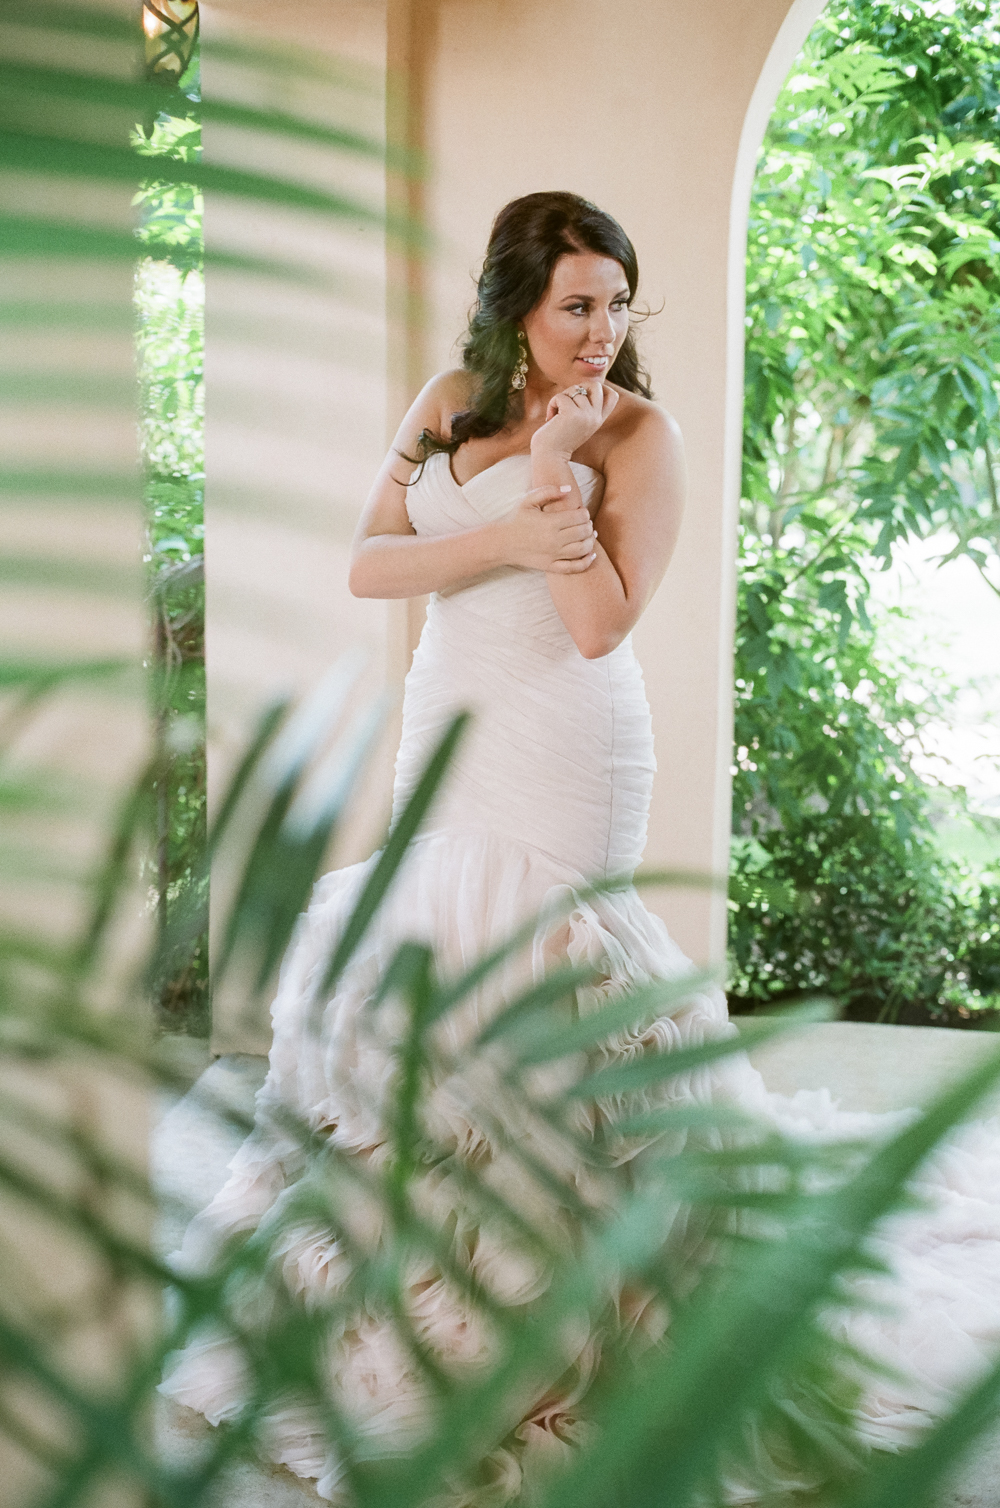 houston-bridal-session-film-photographer-white-bouquet-college-park-flowers-christine-gosch-09.jpg